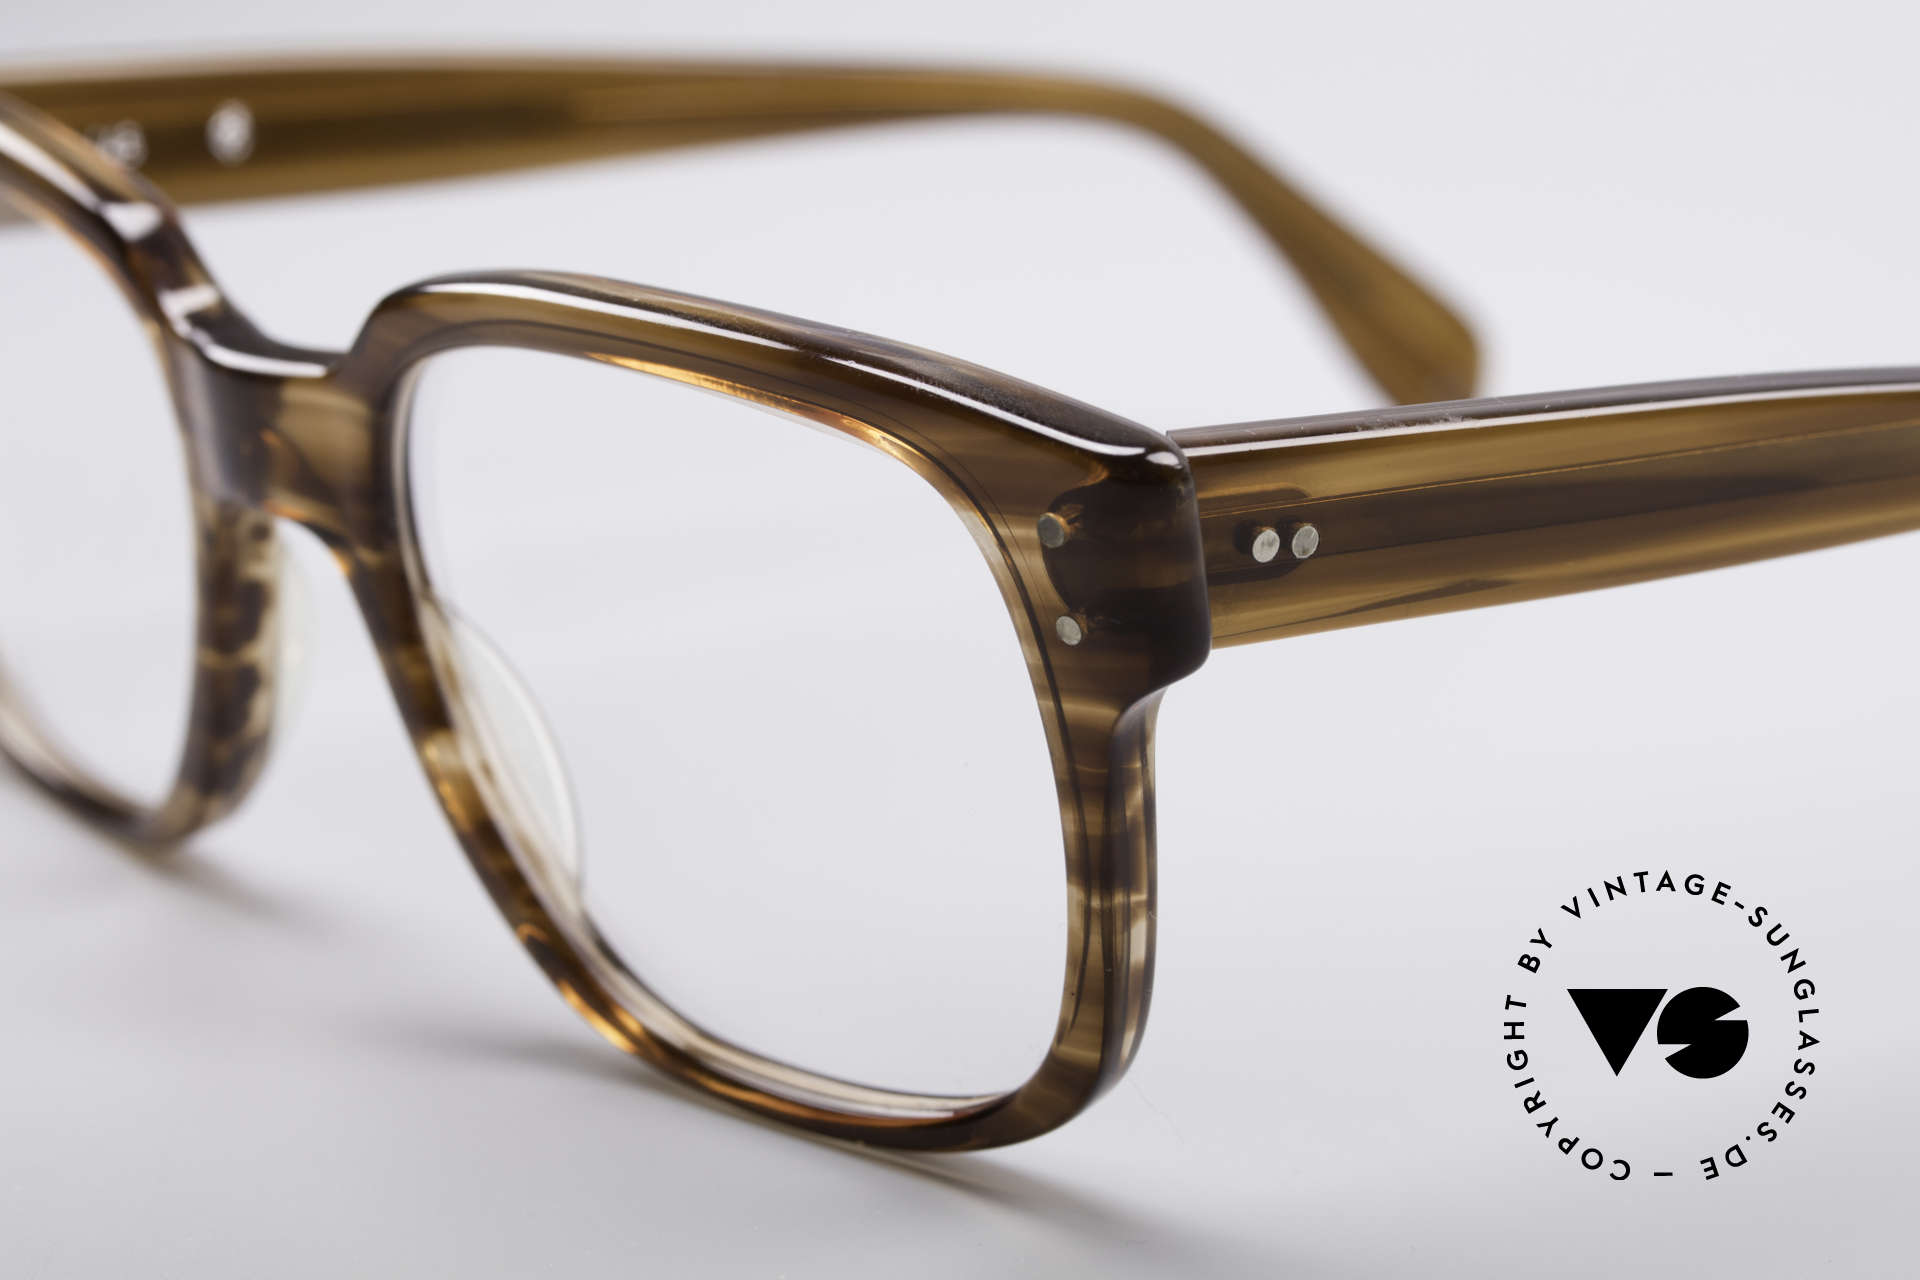 Metzler 447 Authentic Vintage Eyeglasses, 2nd hand model, but in mint condition - truly vintage!, Made for Men